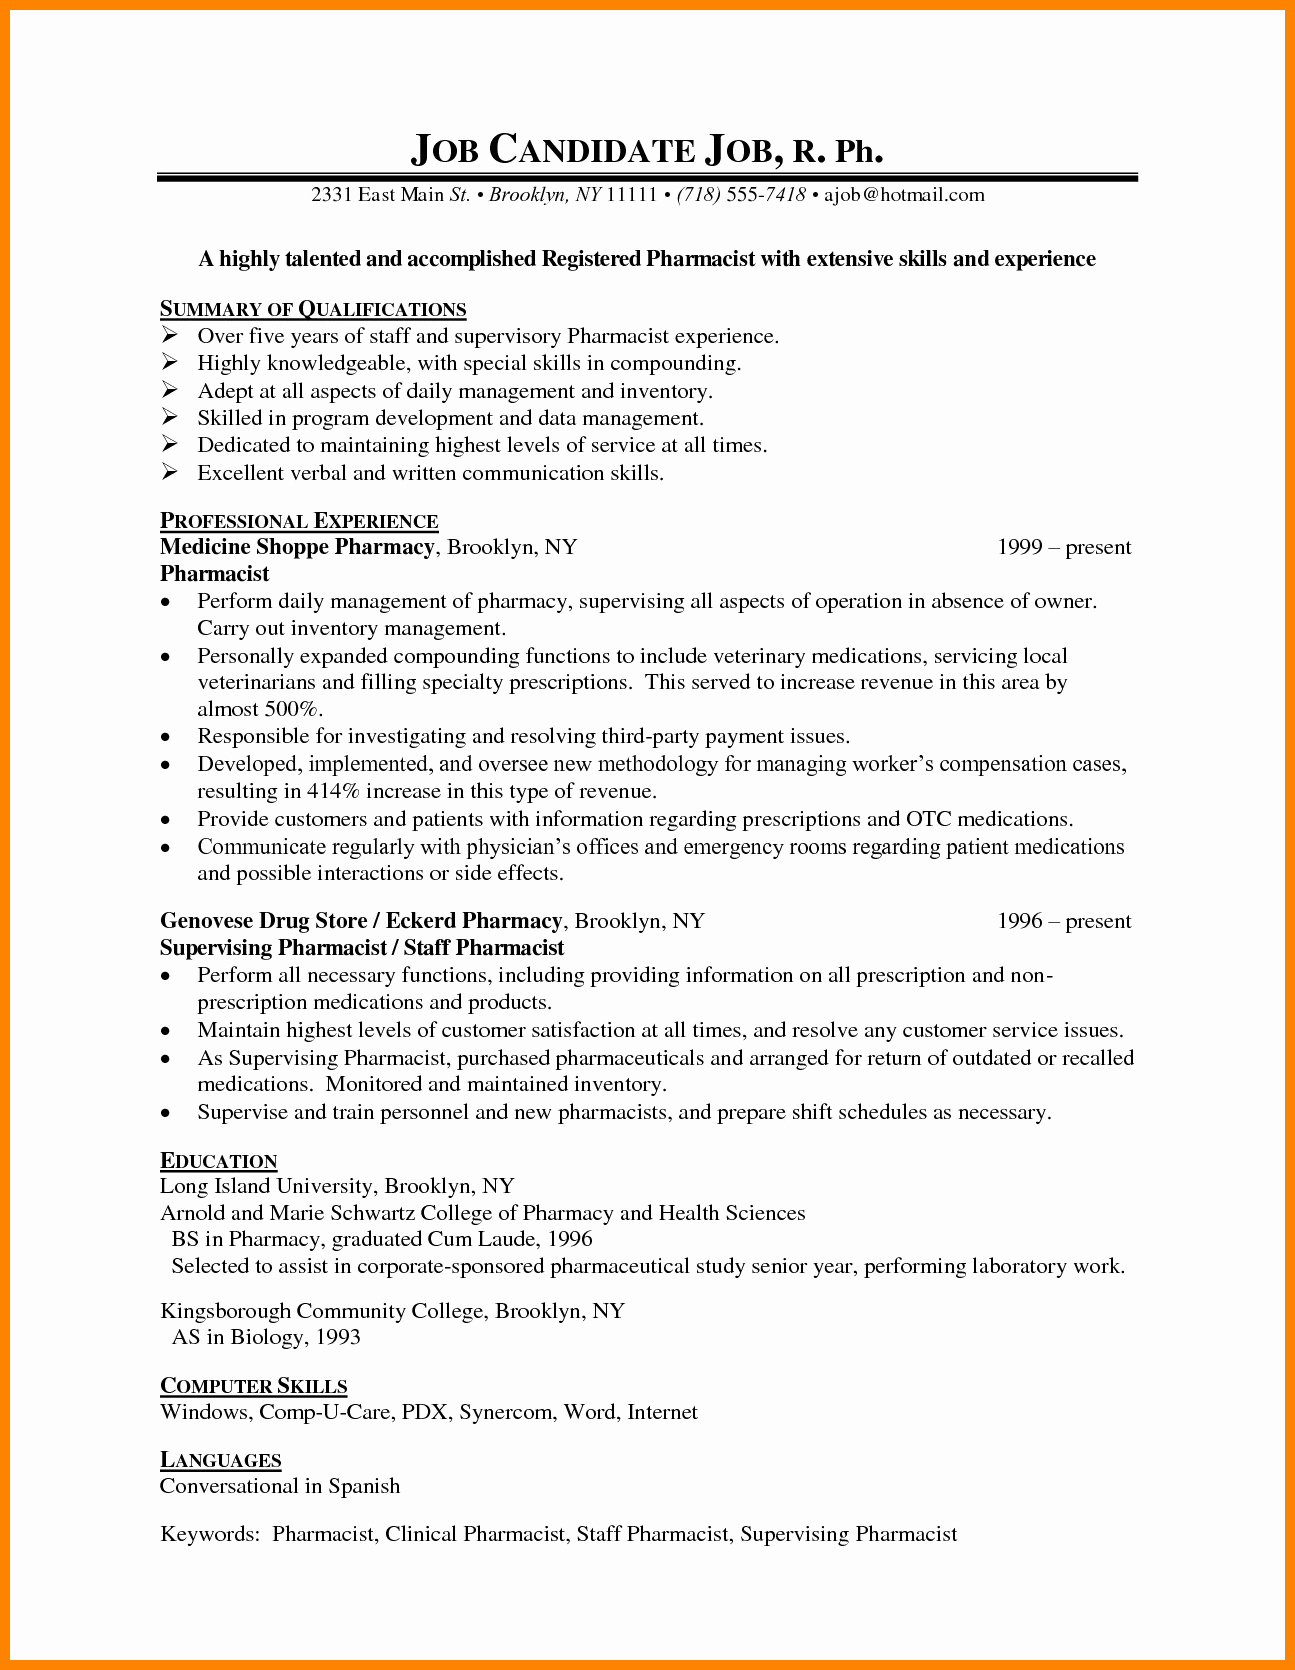 Pharmacy Curriculum Vitae Examples Lovely 8 Cv Sample for Pharmacist